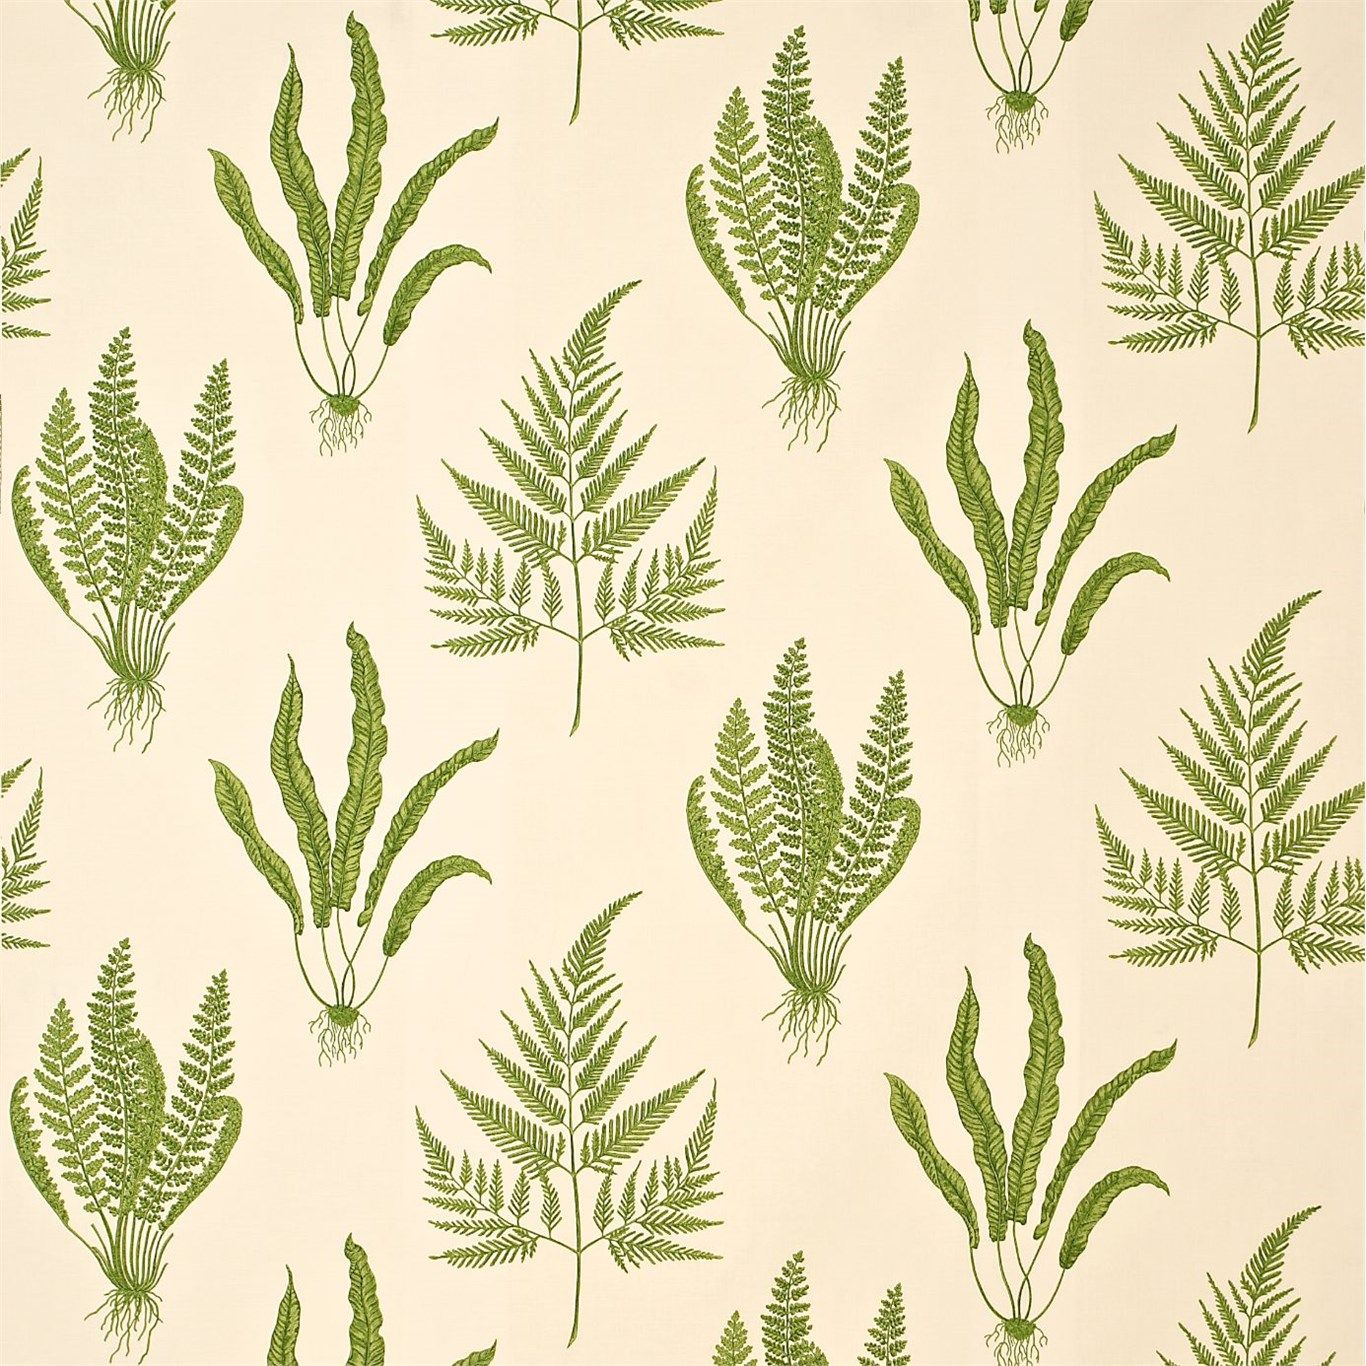 Products harlequin designer fabrics and wallpapers paradise - Sanderson Traditional To Contemporary High Quality Designer Fabrics And Wallpapers Products British